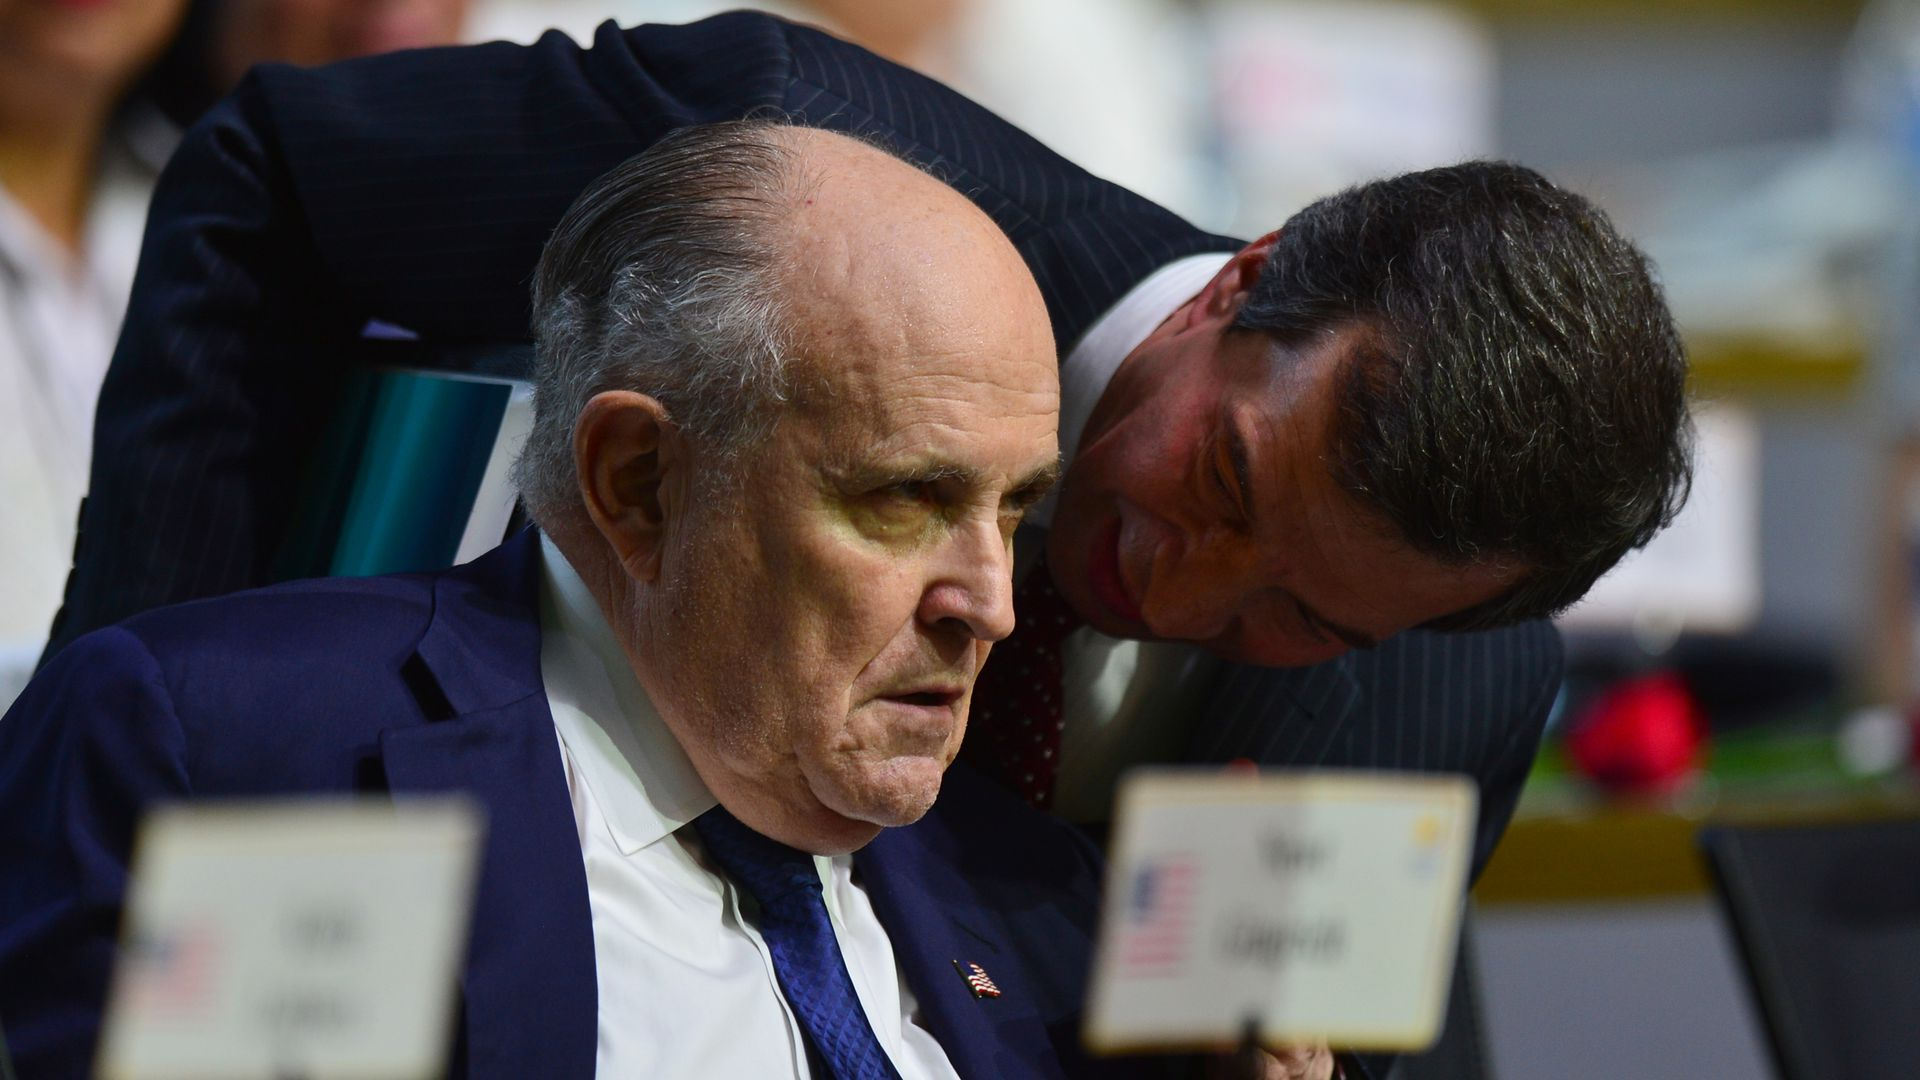 An aide whispering in Rudy Giuliani's ear